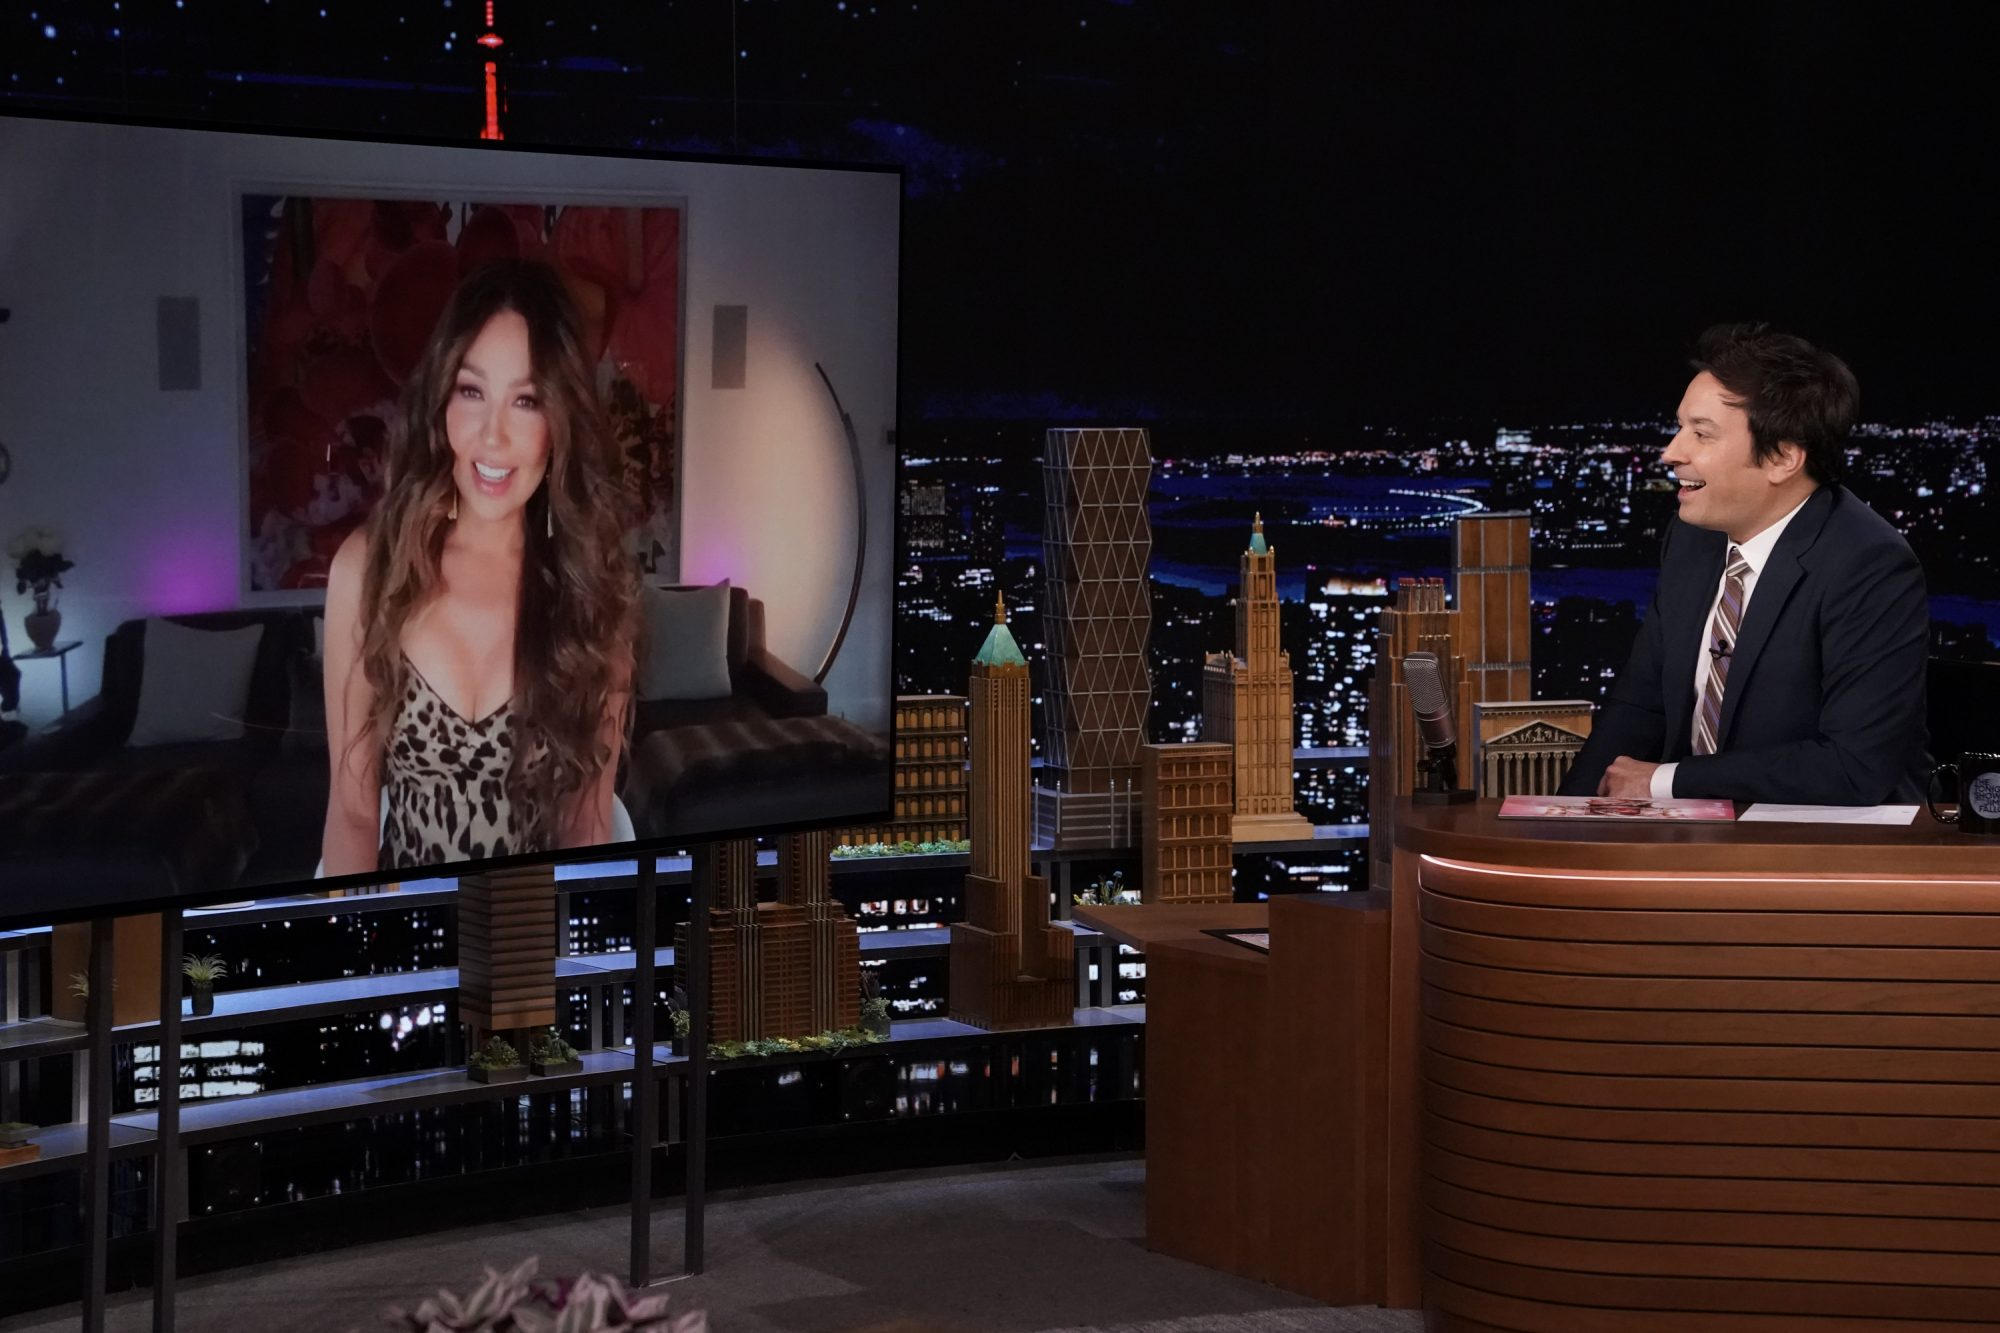 Singer Thalía during an interview with host Jimmy Fallon